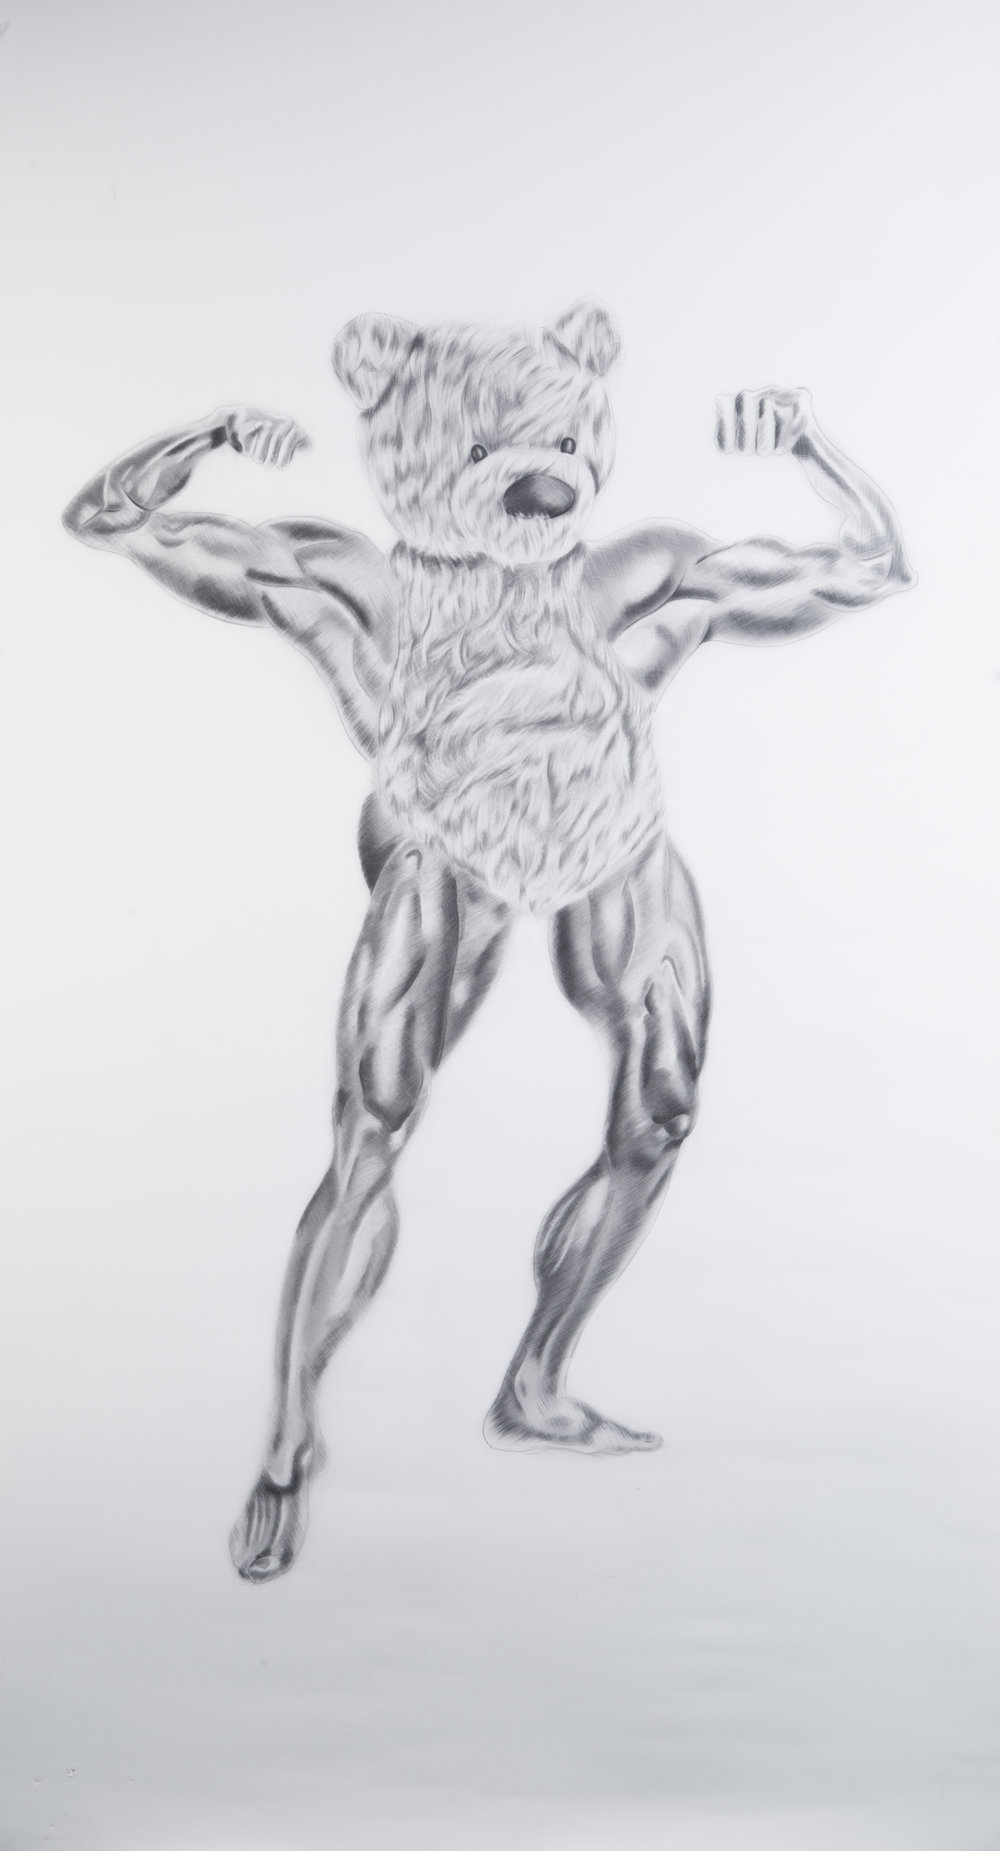 Suns Out Guns Out #1, 24 x 39 inches. Graphite on paper.